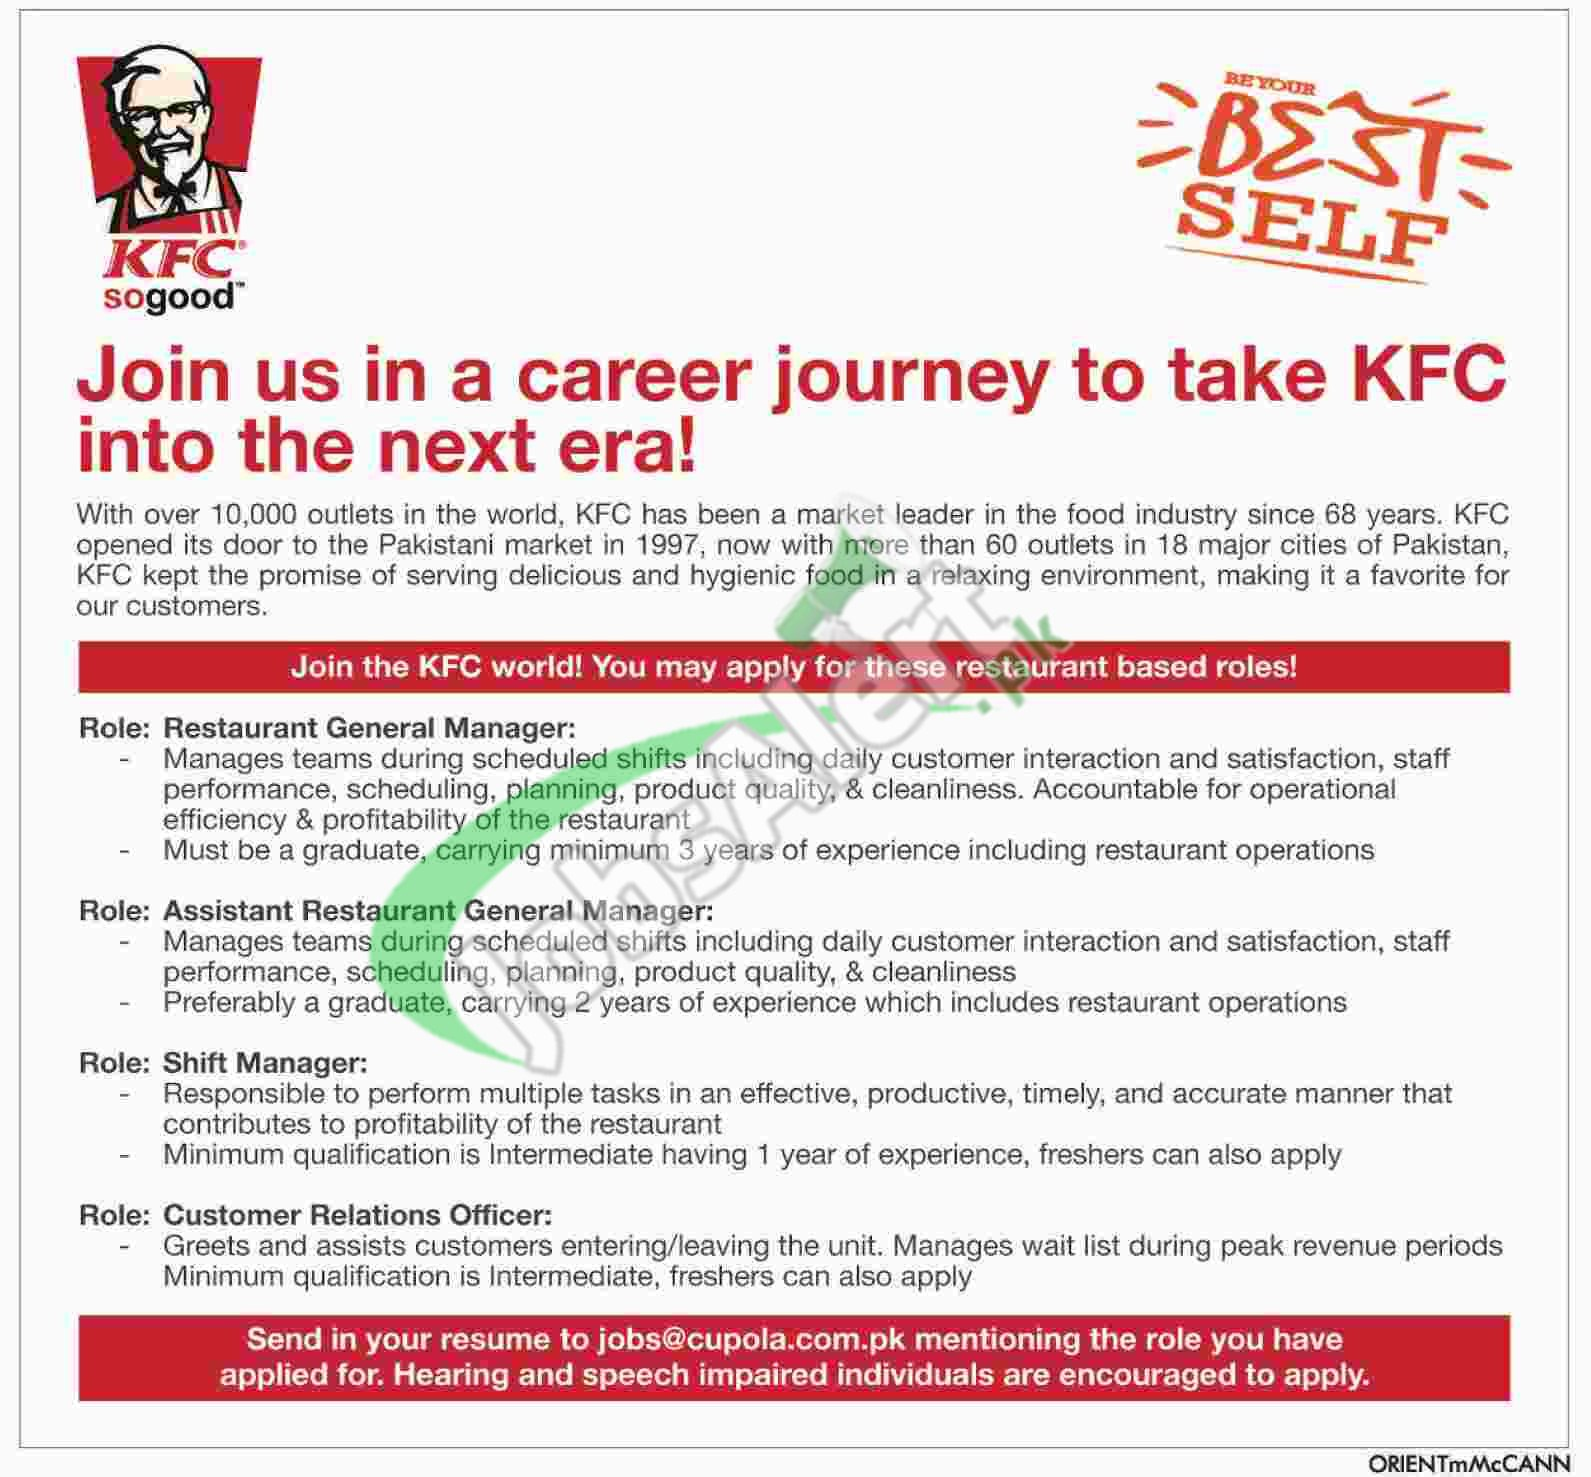 Kfc management jobs pakistan employment opportunities latest view full size click here falaconquin